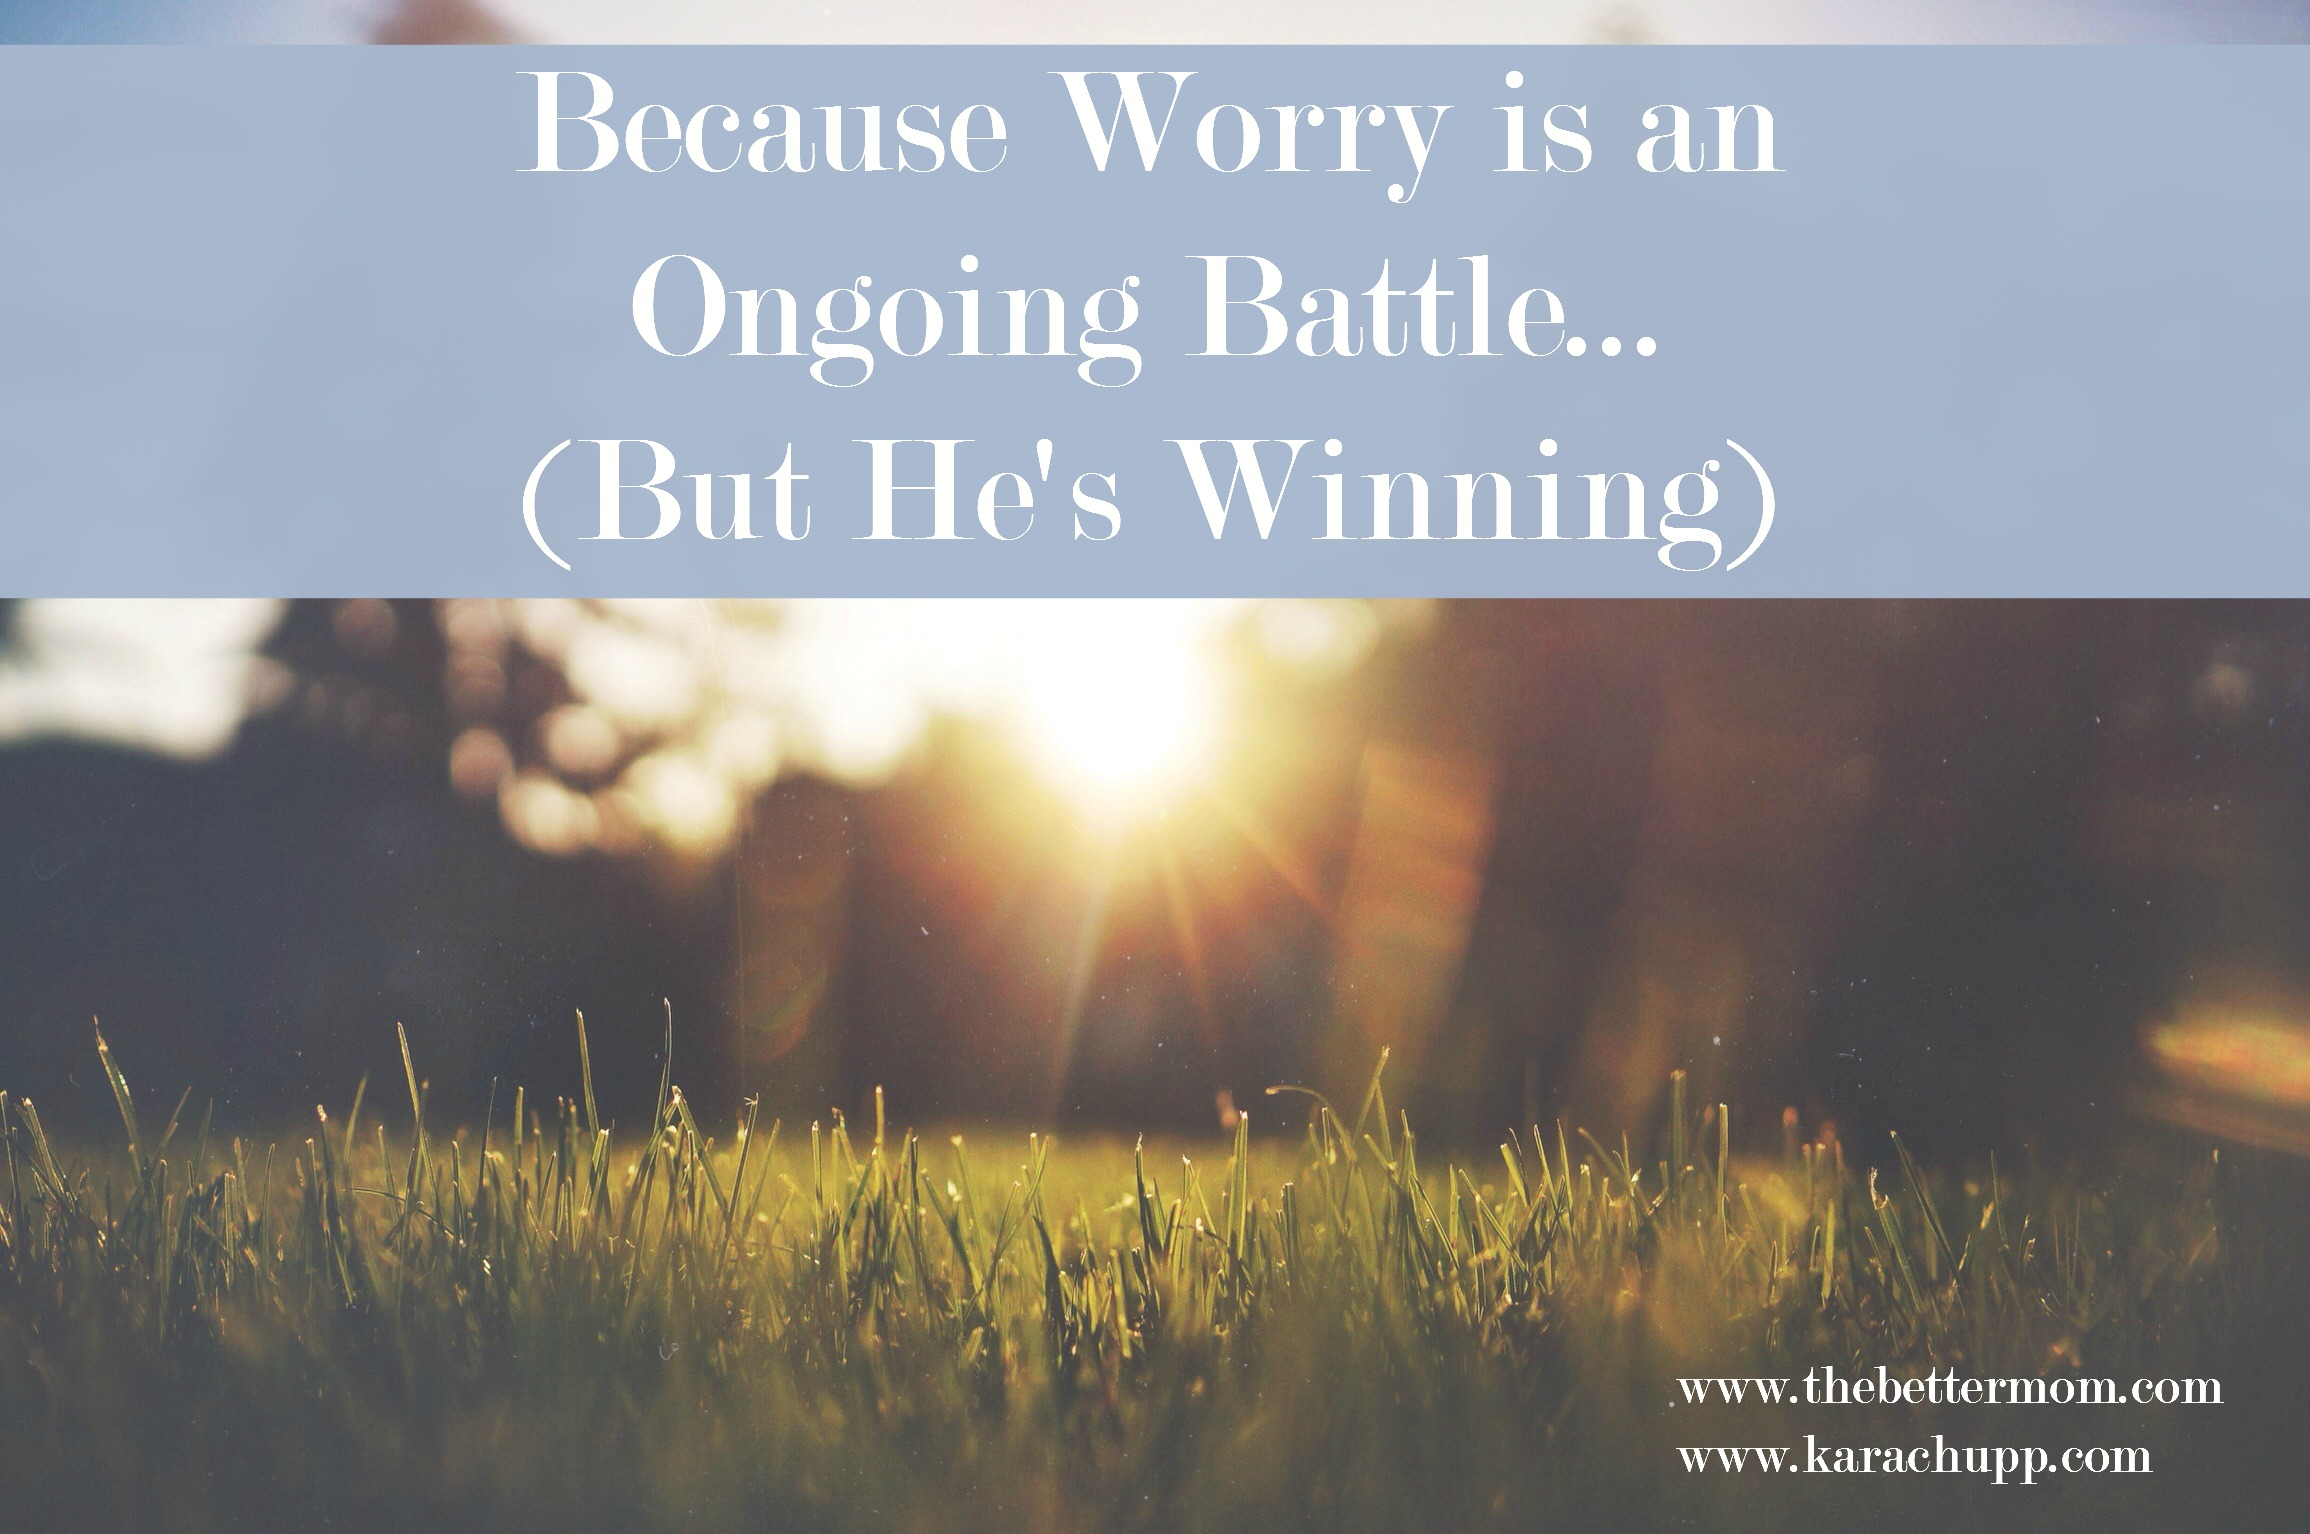 When we start to confront the worry and anxiety in our lives we learn one thing very quickly: this is an ongoing battle. The good news is- God is winning, and here's how he helps us fight in the everyday.